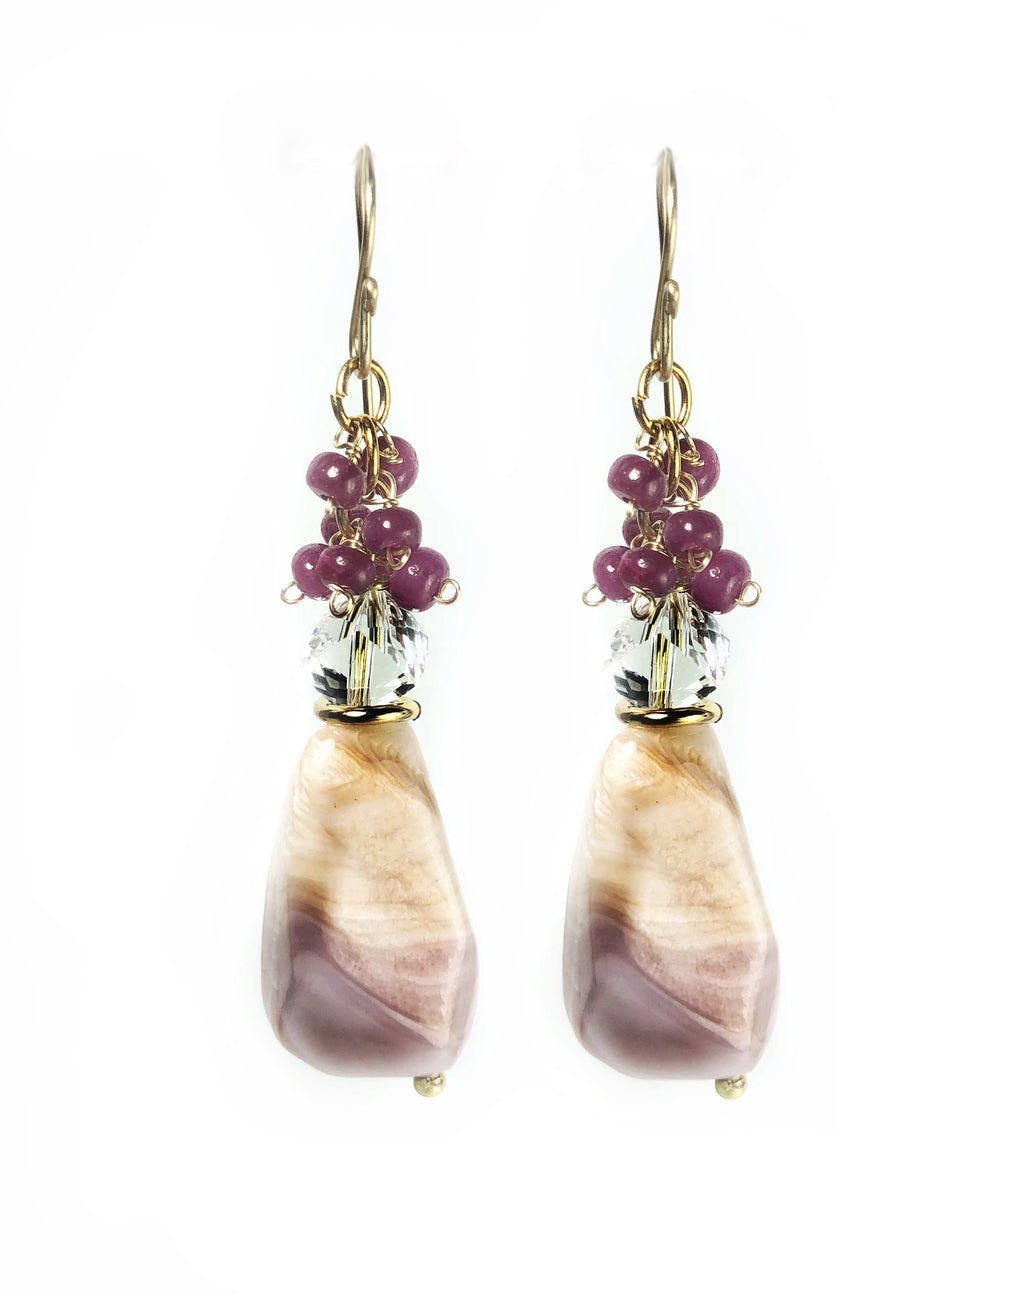 Mississippi Delta Pink Earrings - Terry Schiefer